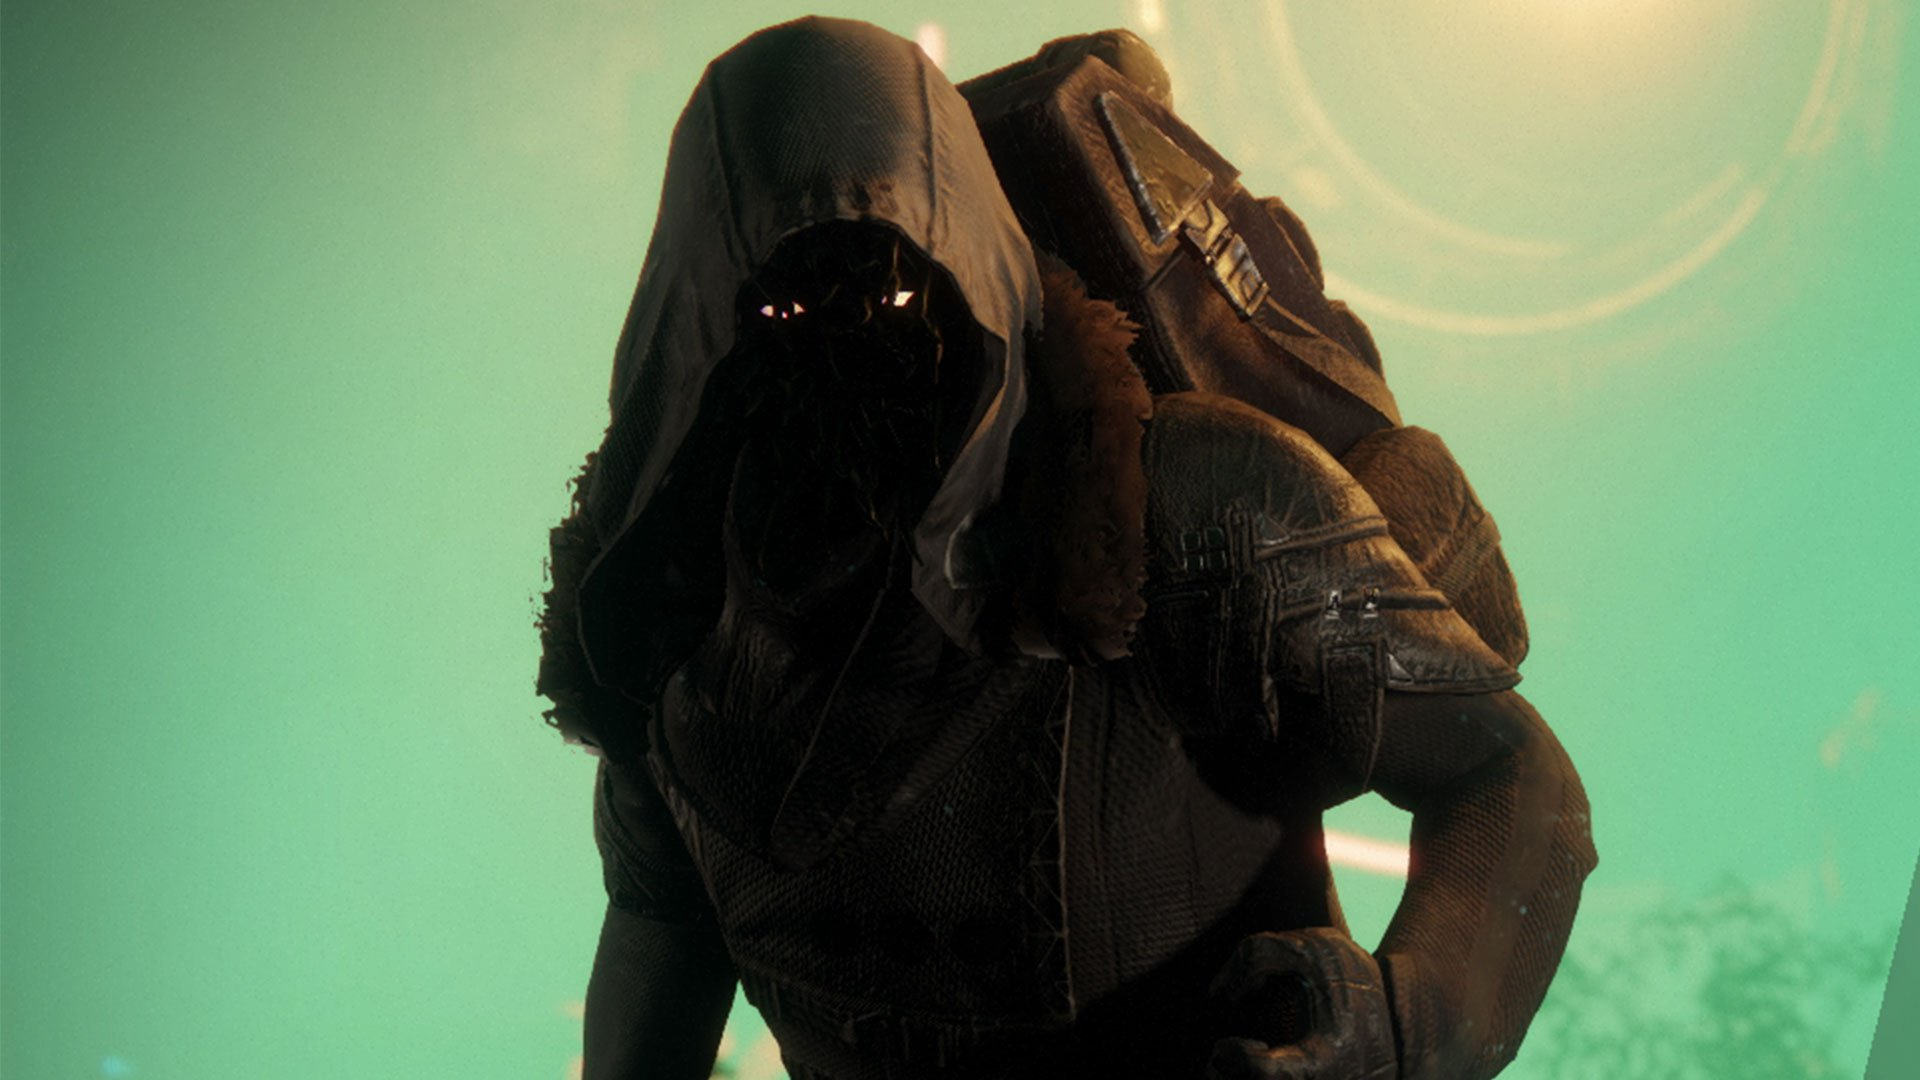 Xur can be found at the back of The Hangar in Destiny 2 during the week of March 8.